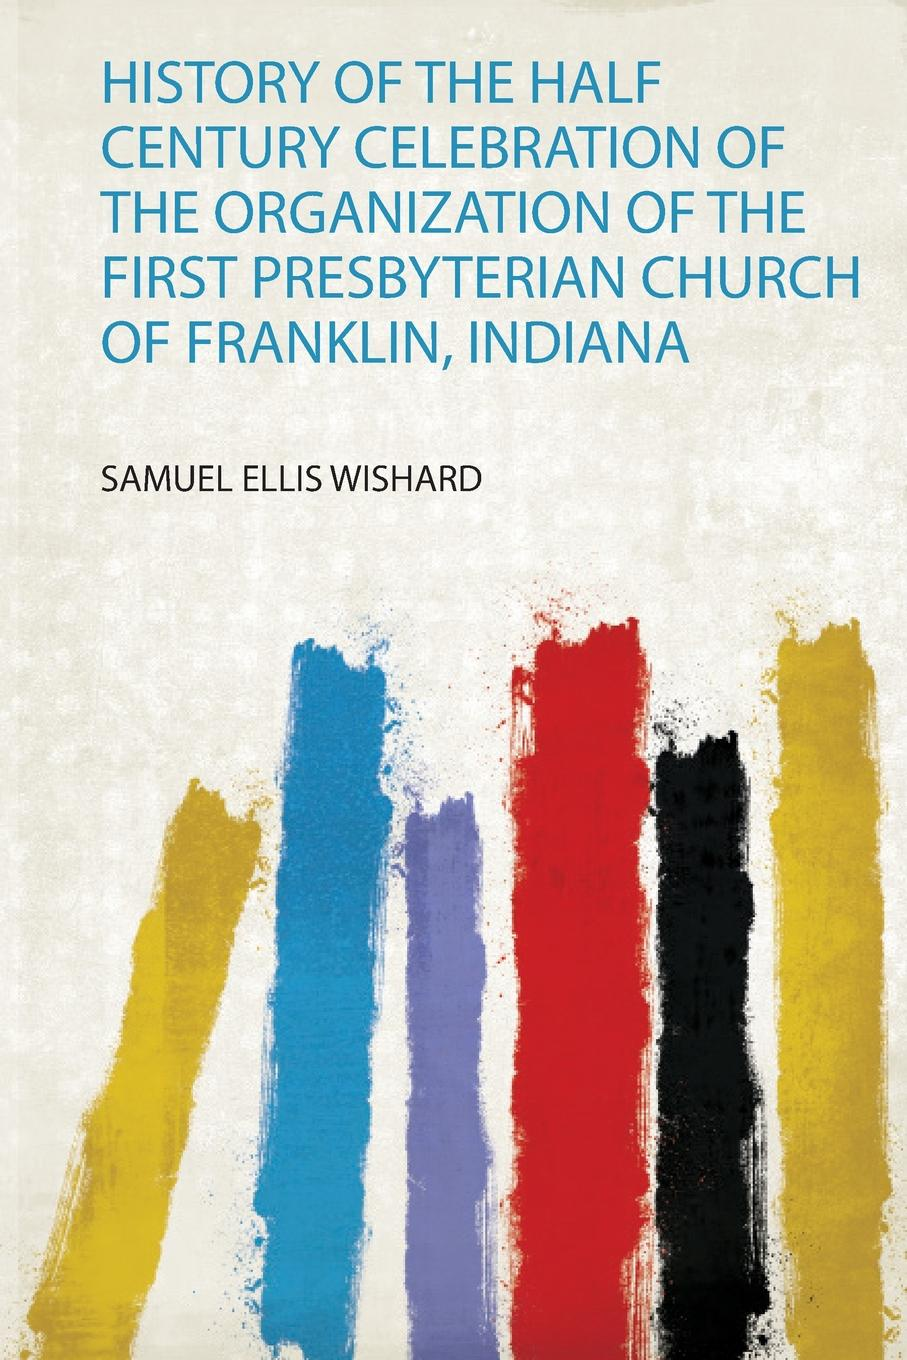 History of the Half Century Celebration of the Organization of the First Presbyterian Church of Franklin, Indiana